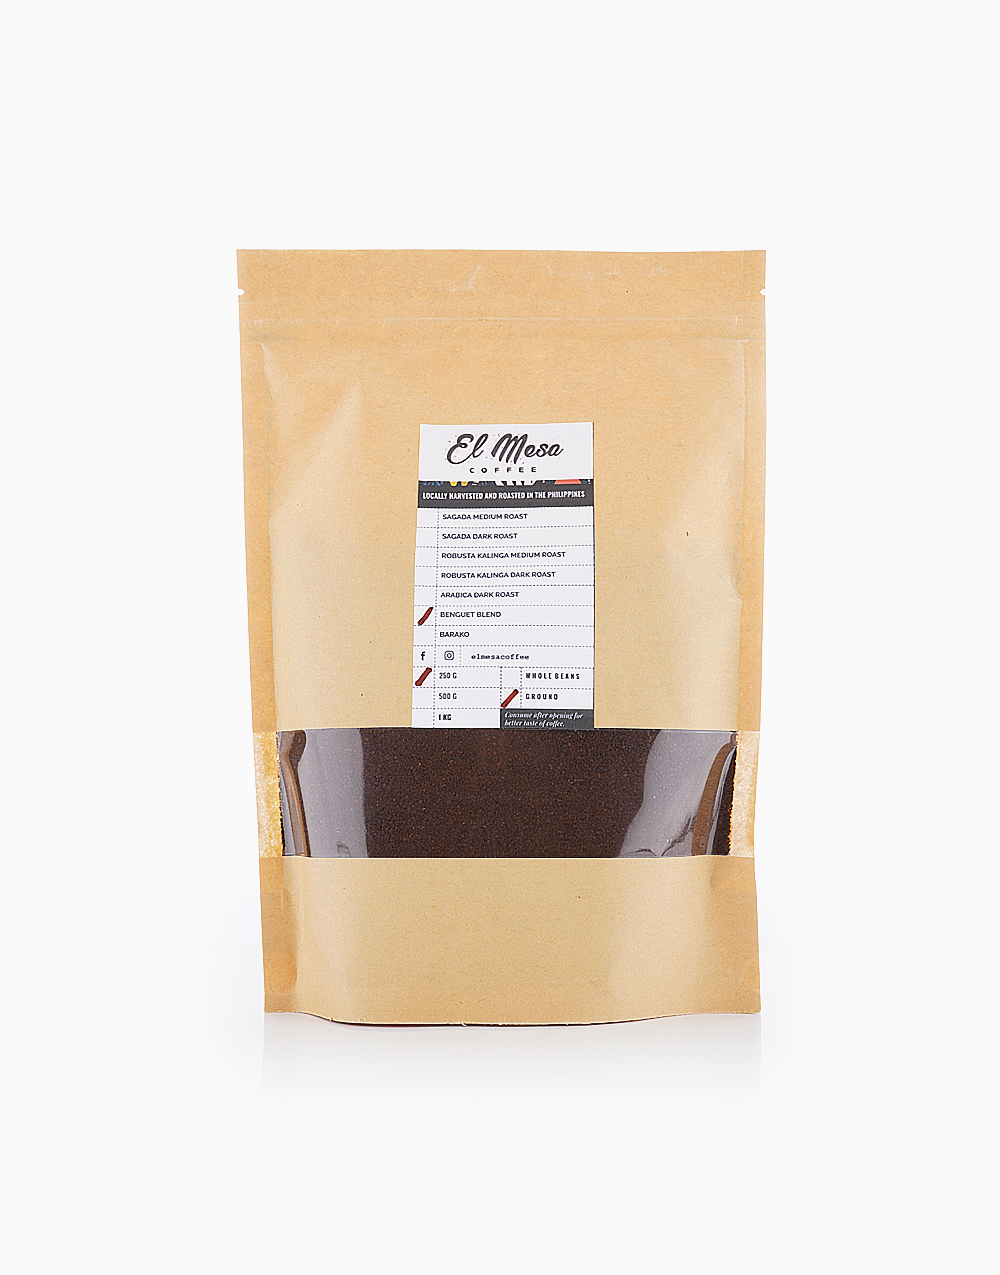 Benguet Blend Coffee Grounds by El Mesa Coffee